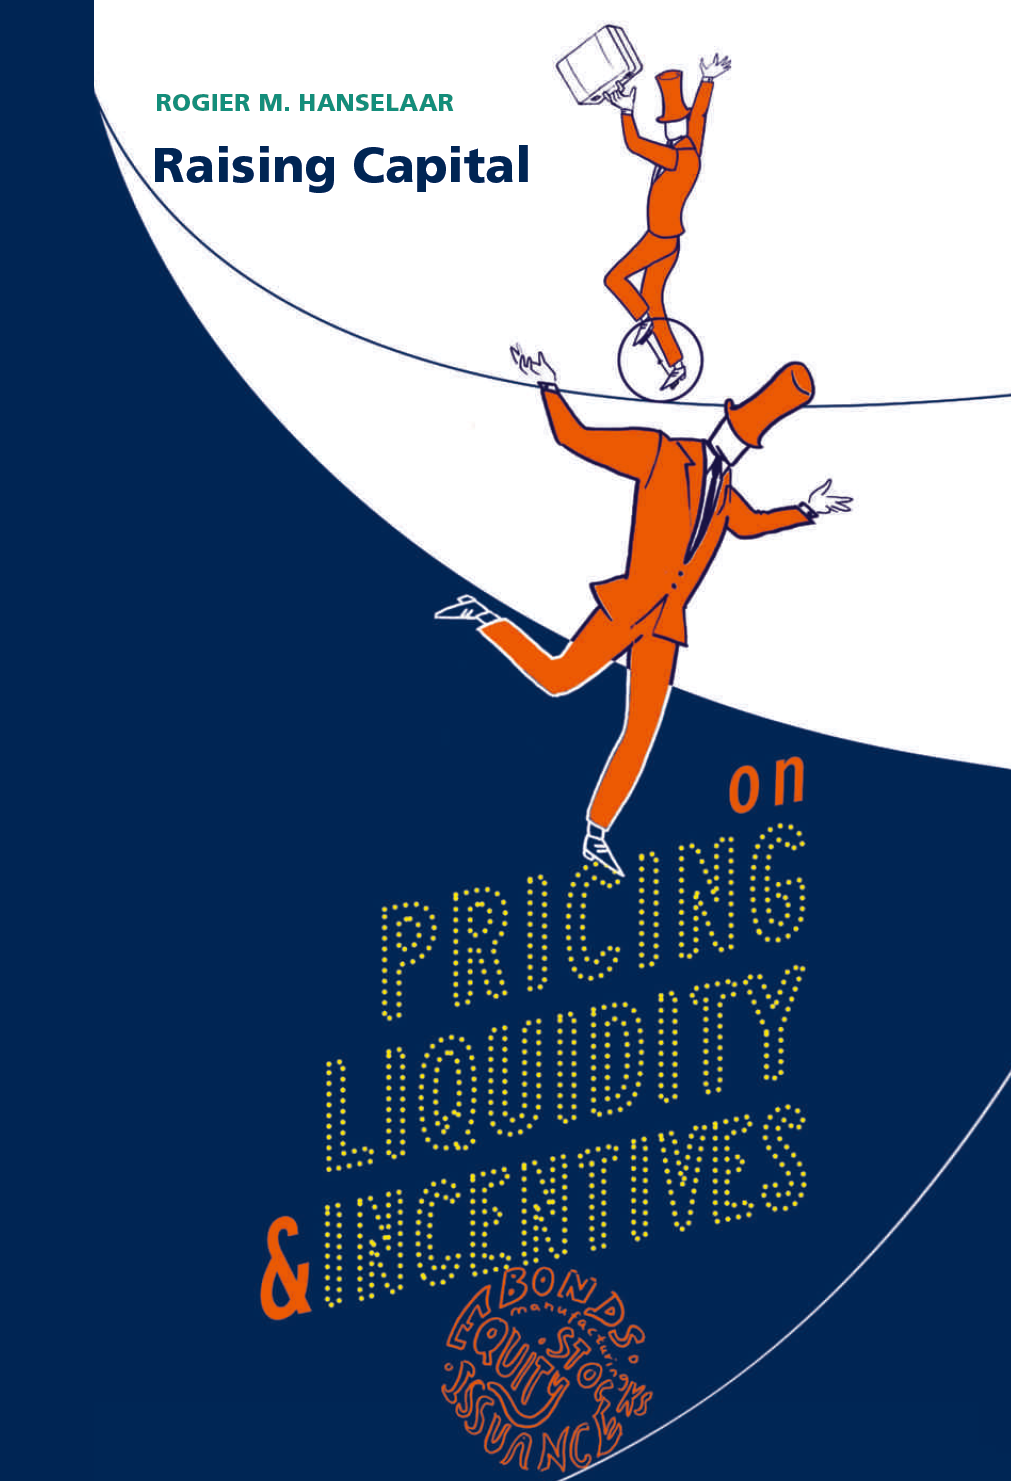 Raising capital: On pricing, liquidity, and incentives